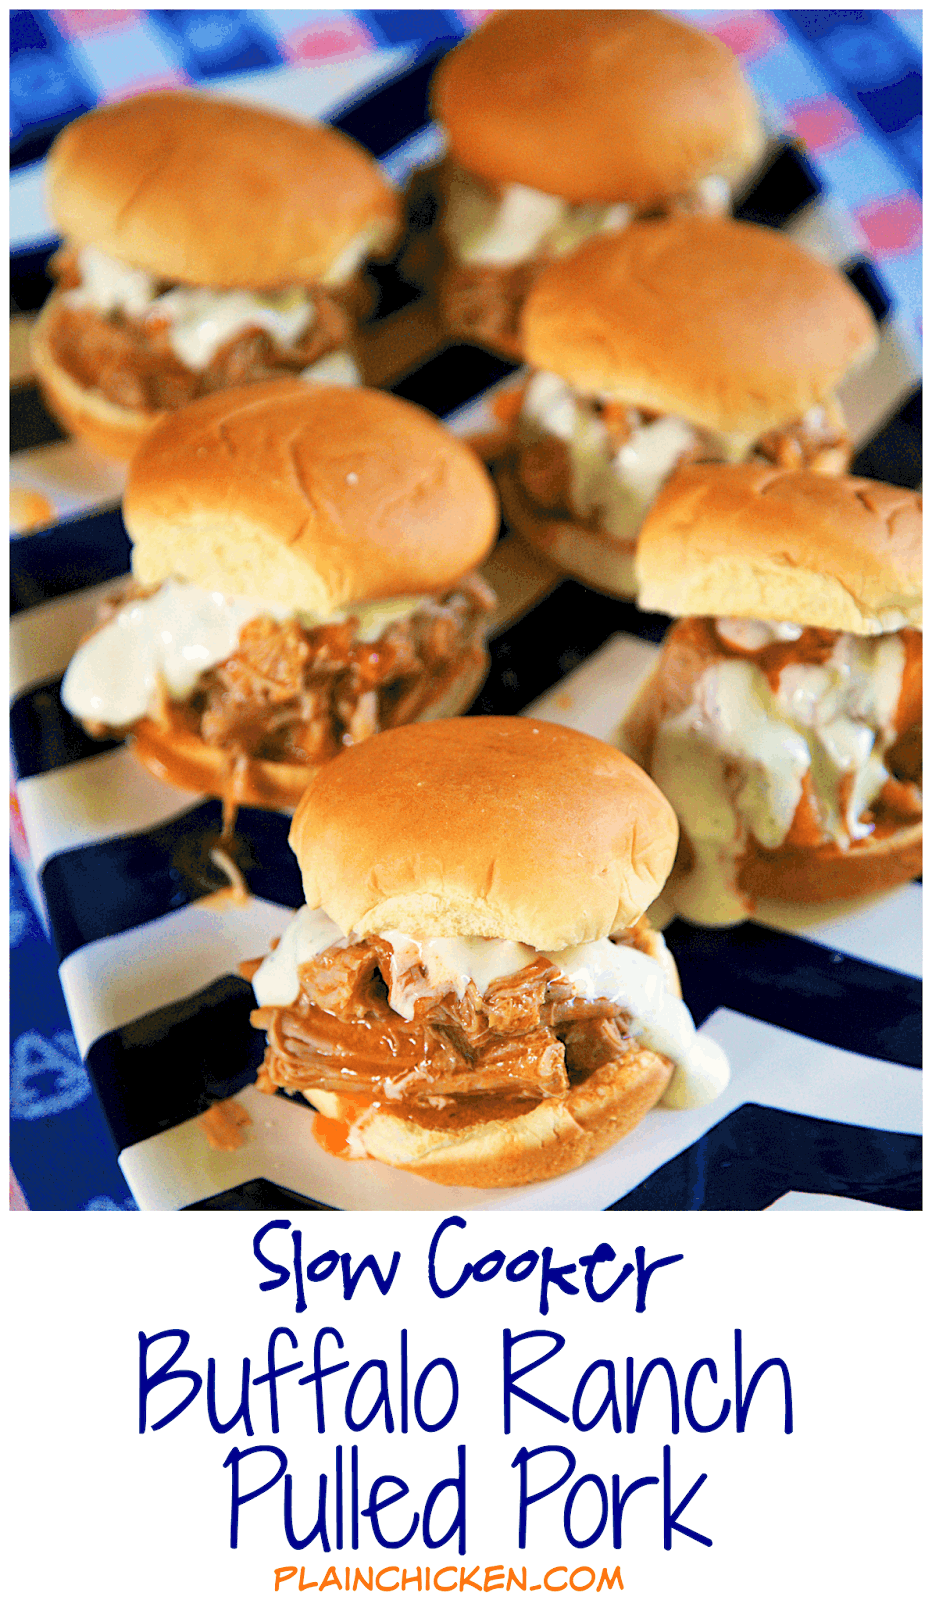 Slow Cooker Buffalo Ranch Pulled Pork - throw 3 ingredients into the slow cooker and let it do all the work. Great for tailgating or an easy lunch or dinner. Serve on slider buns or over nachos or rice. Can freeze leftovers!